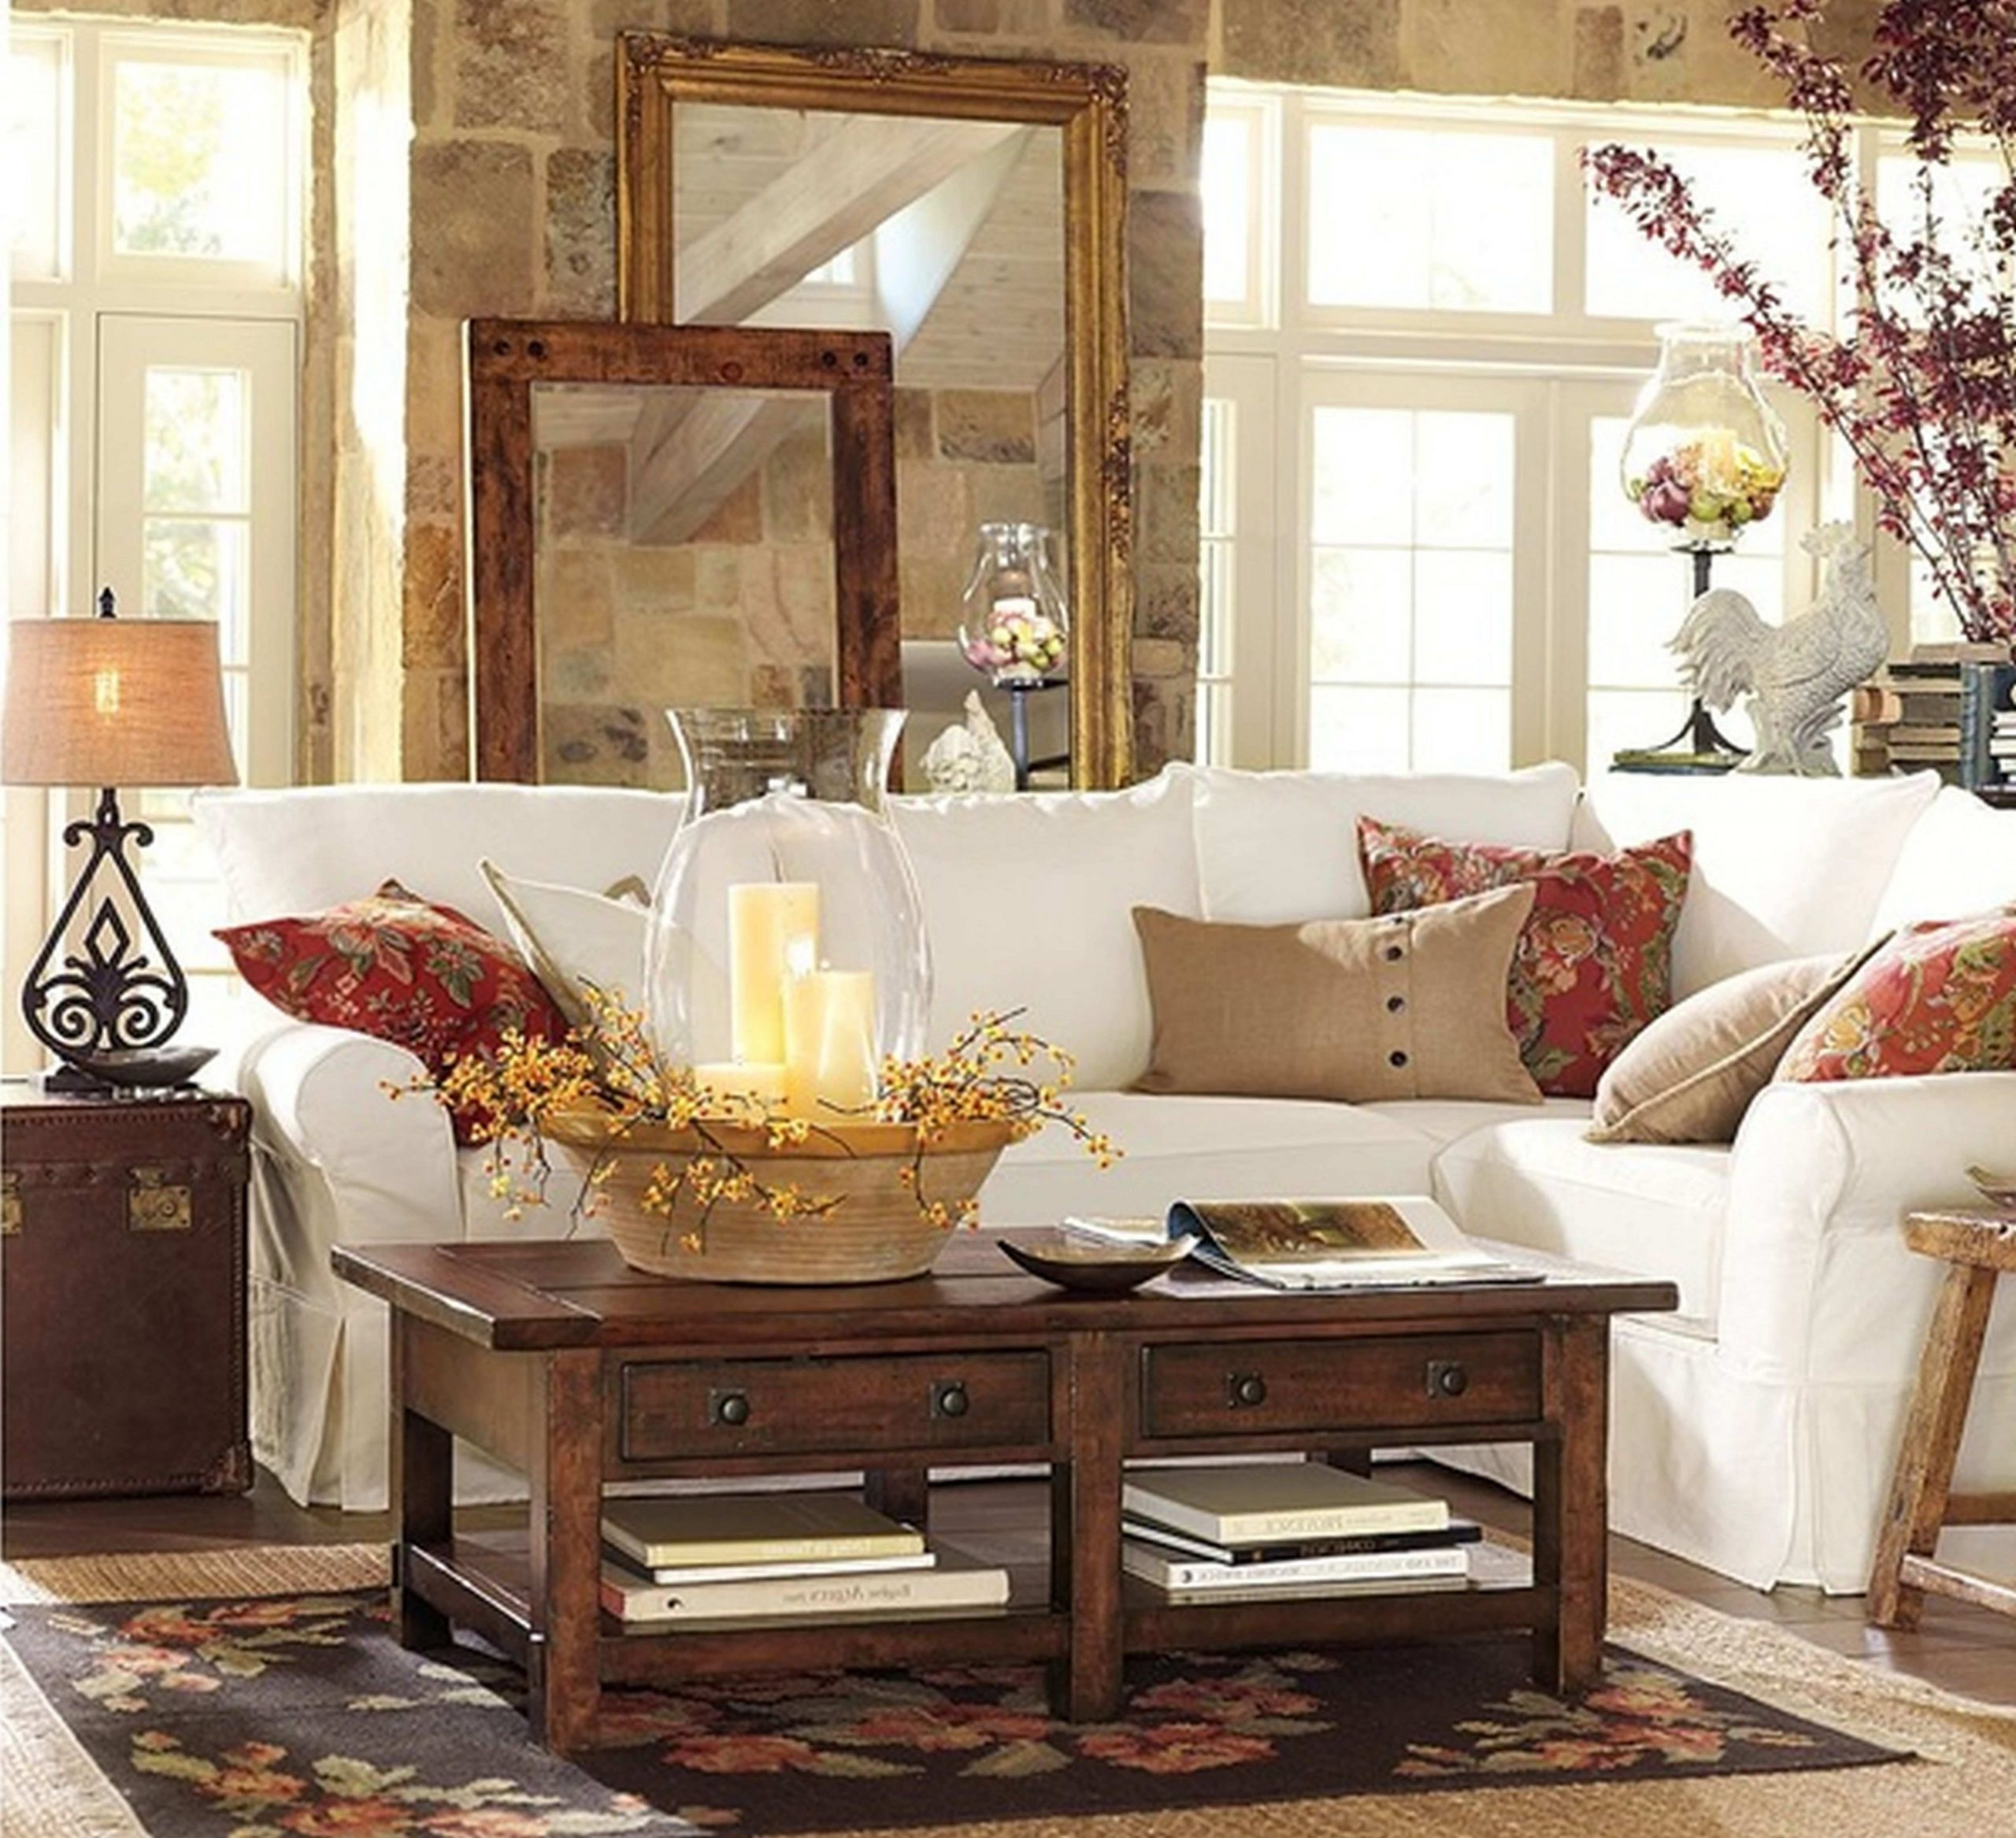 Only Furniture: Appealing Pottery Barn Living Room Decorating  - Dining Room Ideas Pottery Barn